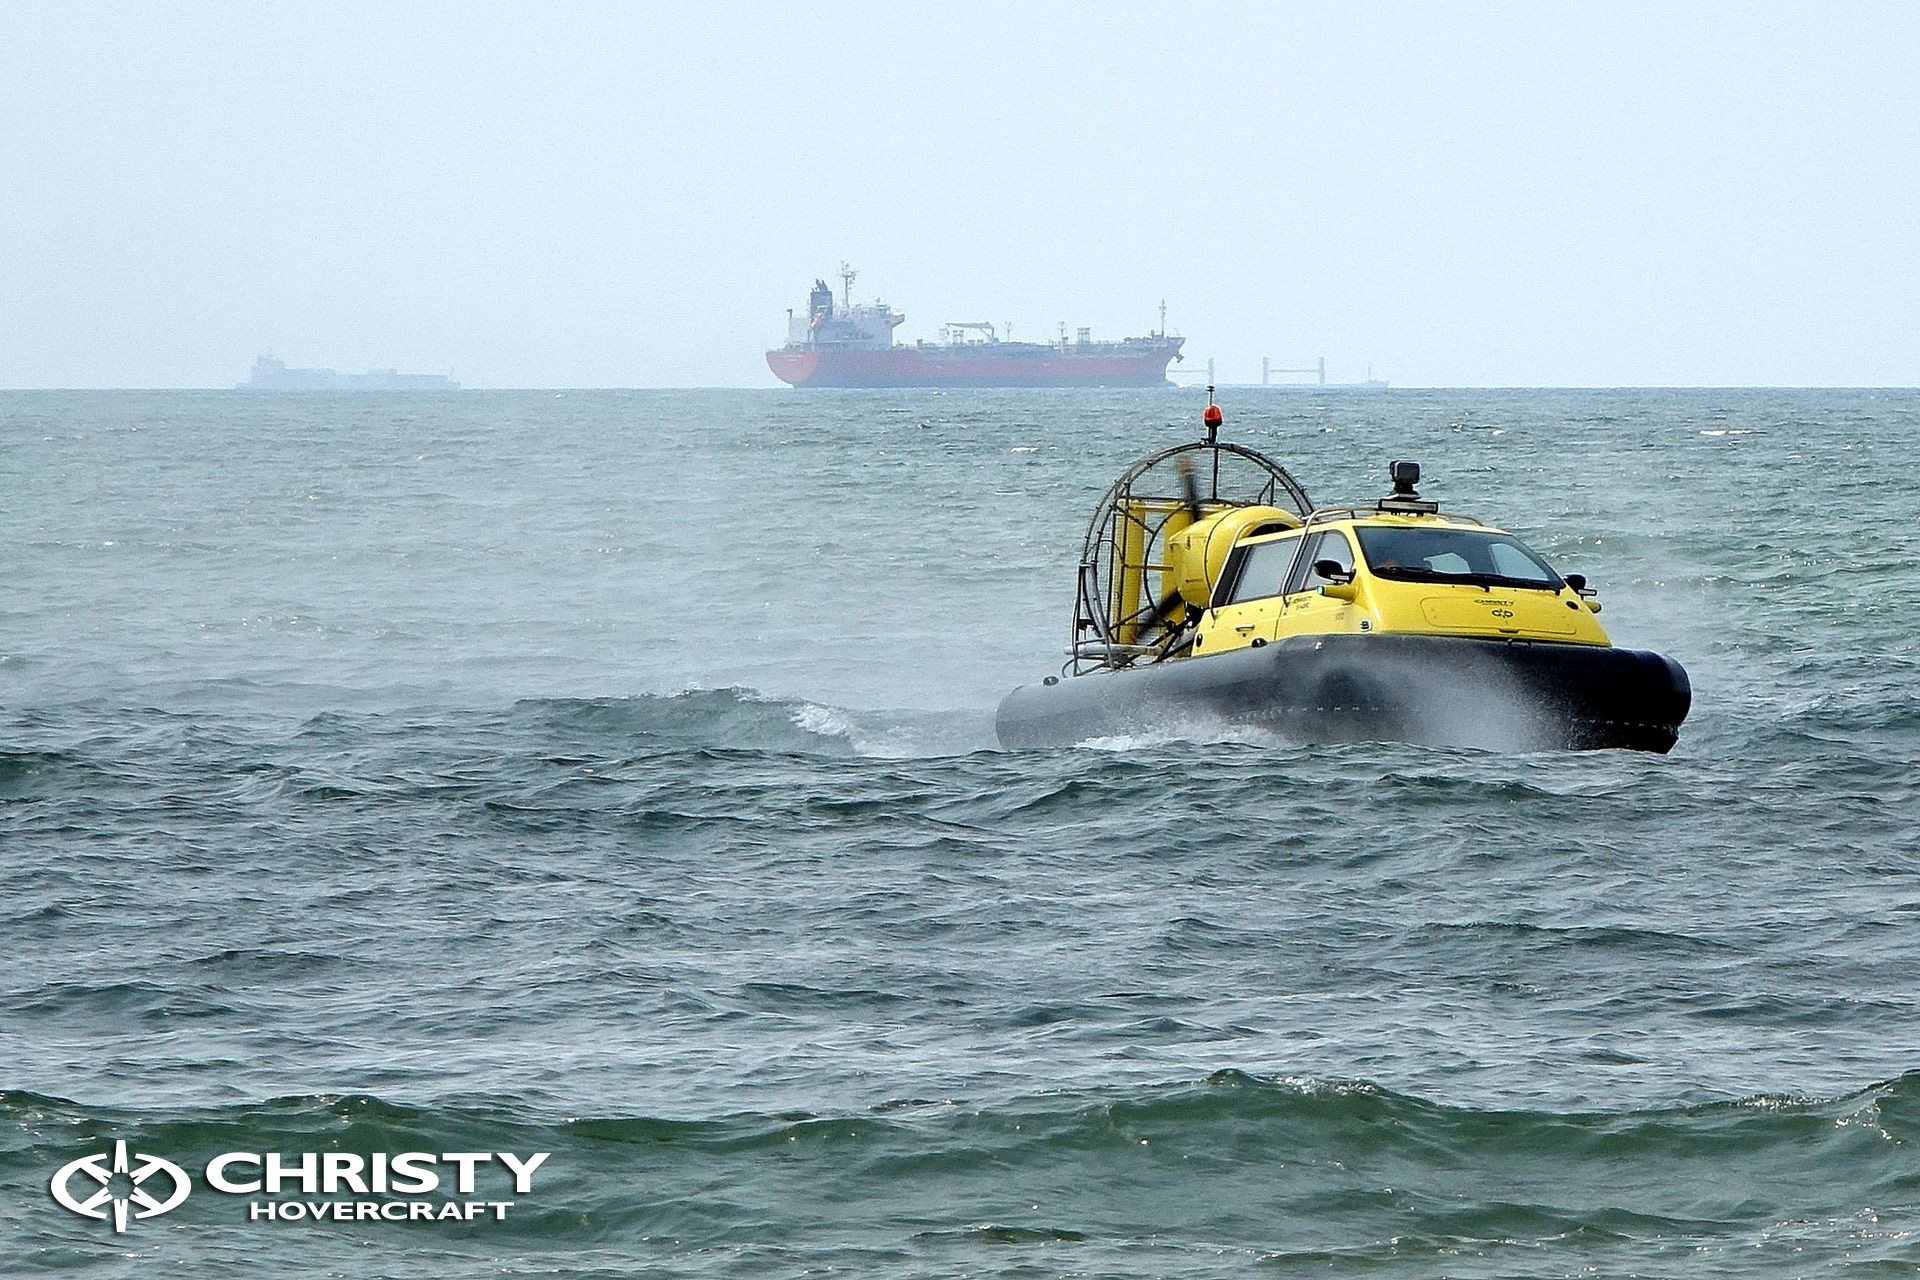 hovercraft-christy-5_7series-27.jpg | фото №38